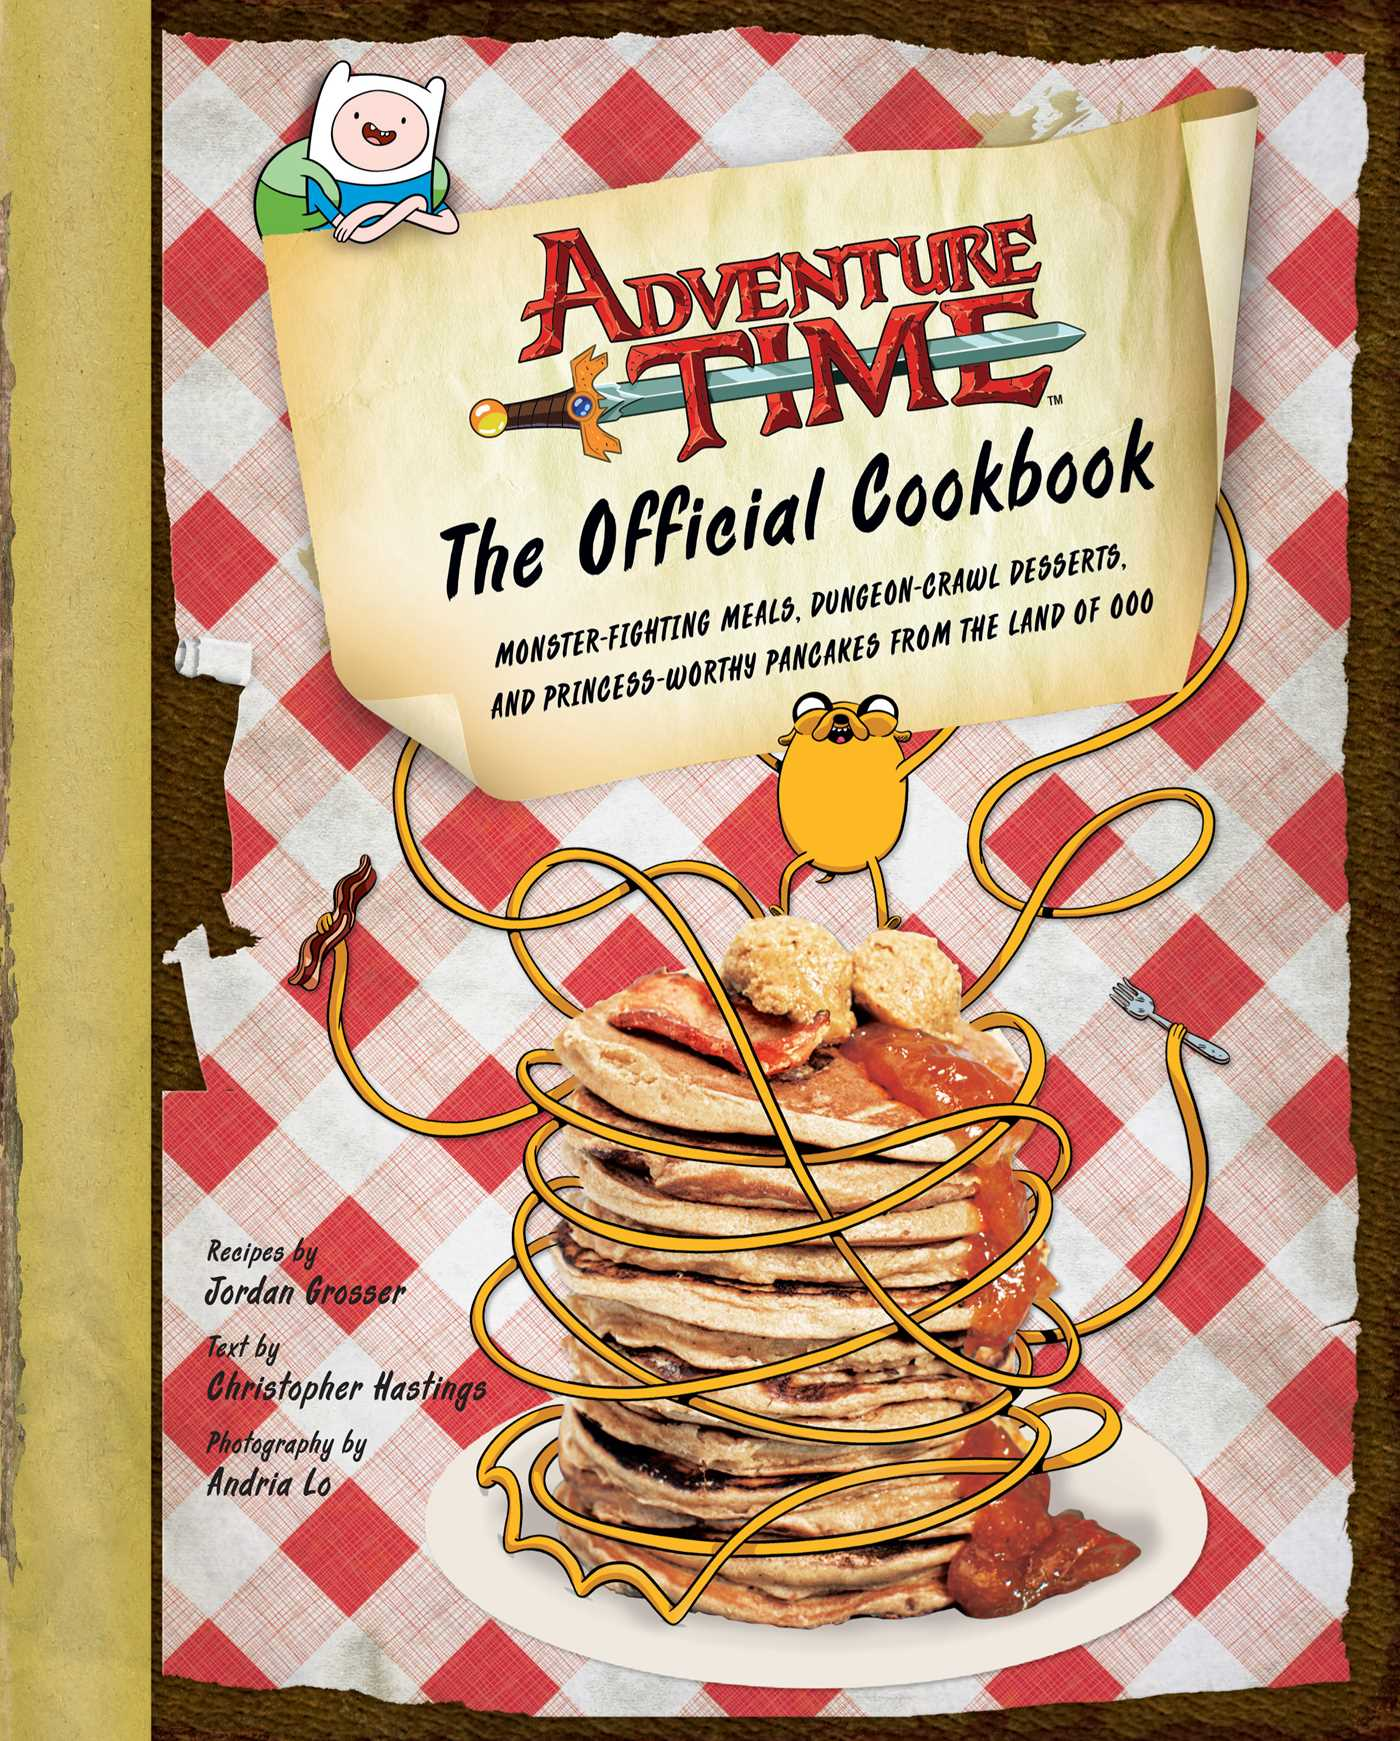 Adventure time the official cookbook 9781608876433 hr